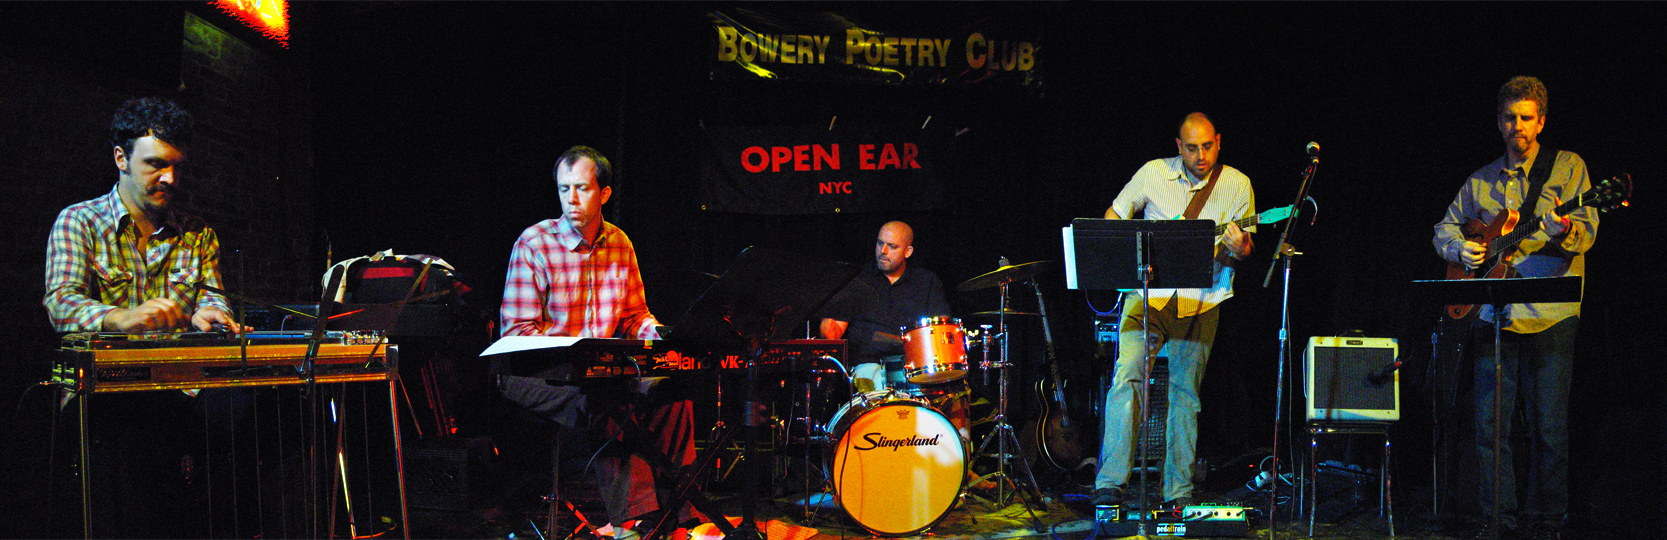 J.A. Granelli and Mr Lucky with Steve Cardenas, Nate Shaw, Gerald Menke &Amp; Diego Voglino - Bowery Poetry Club 2005